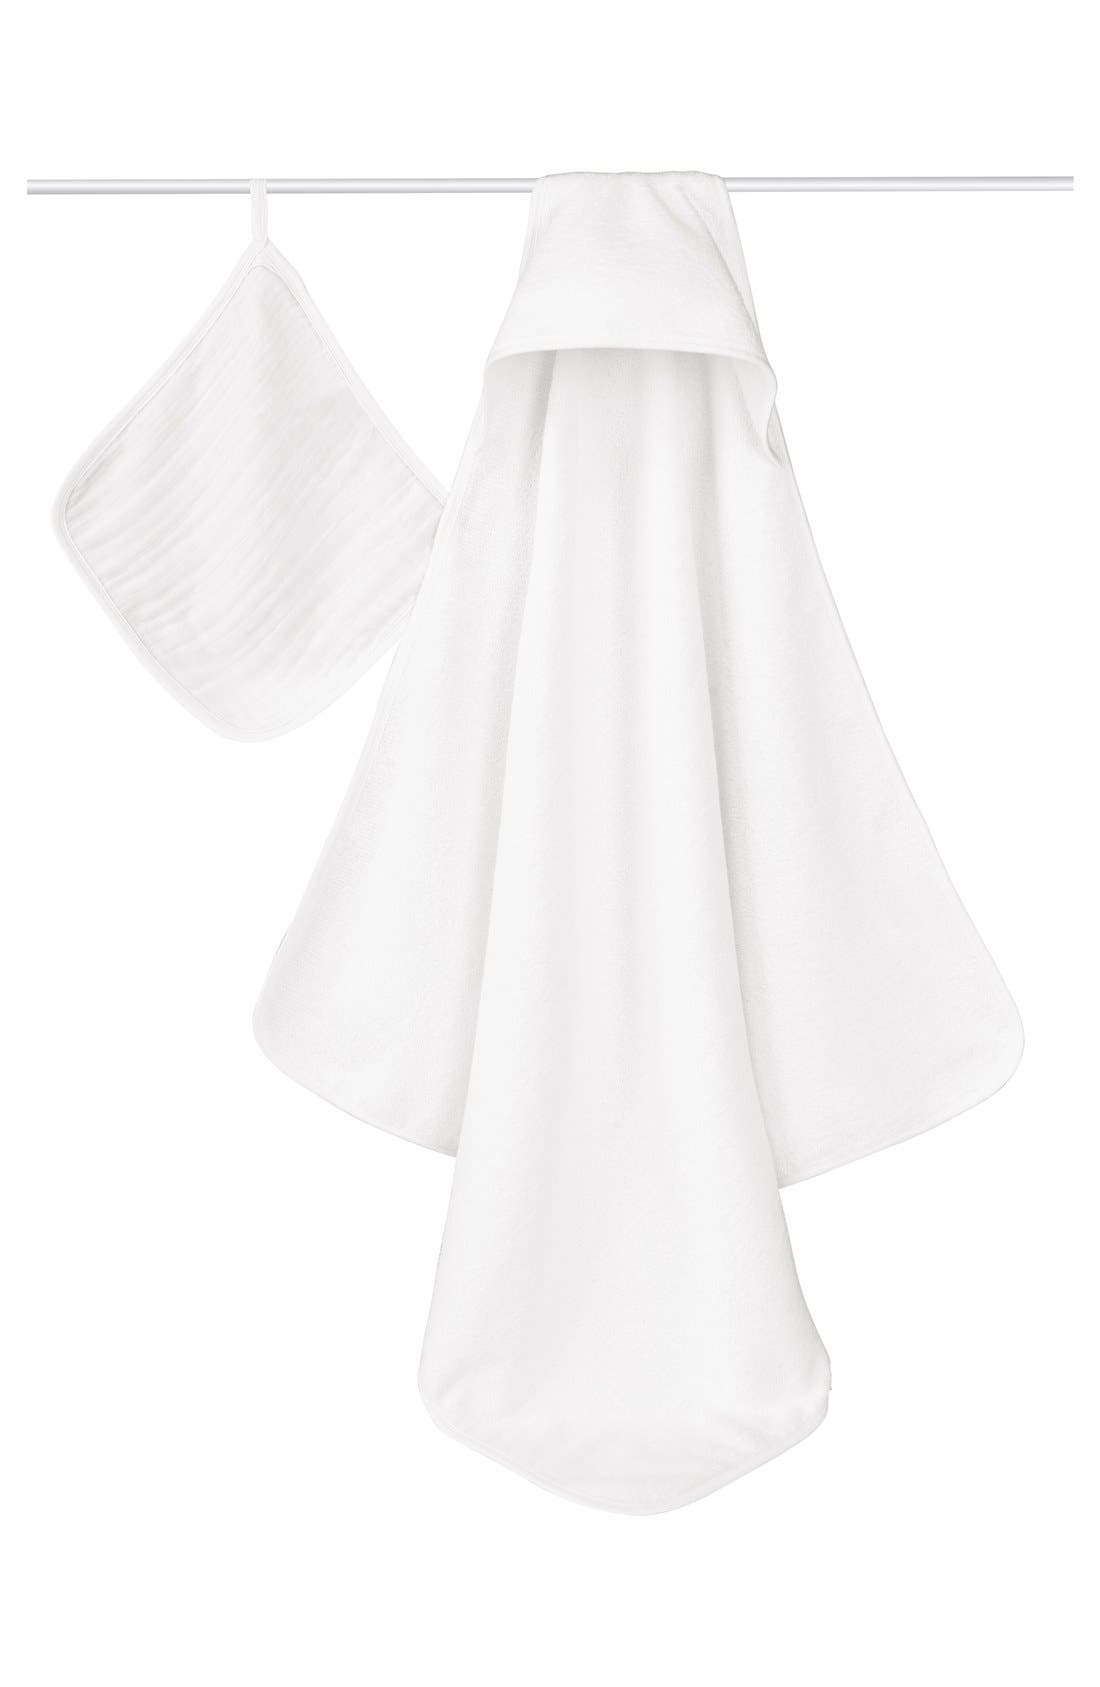 Alternate Image 1 Selected - aden + anais Classic Hooded Towel Set